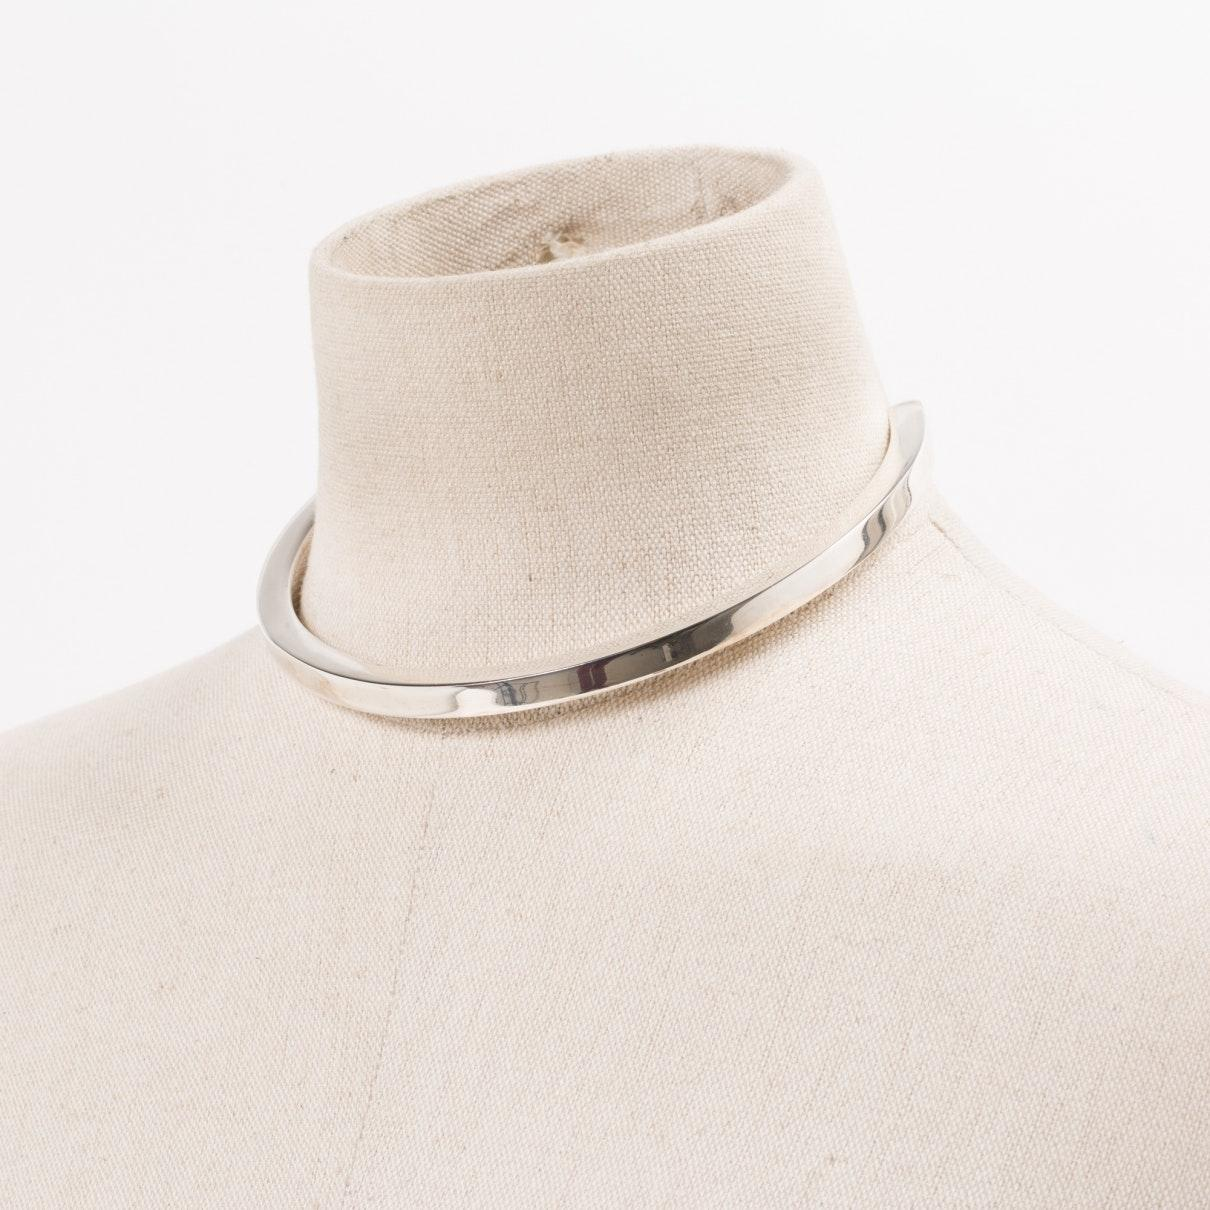 Maison Margiela Silver Silver Necklace in Metallic